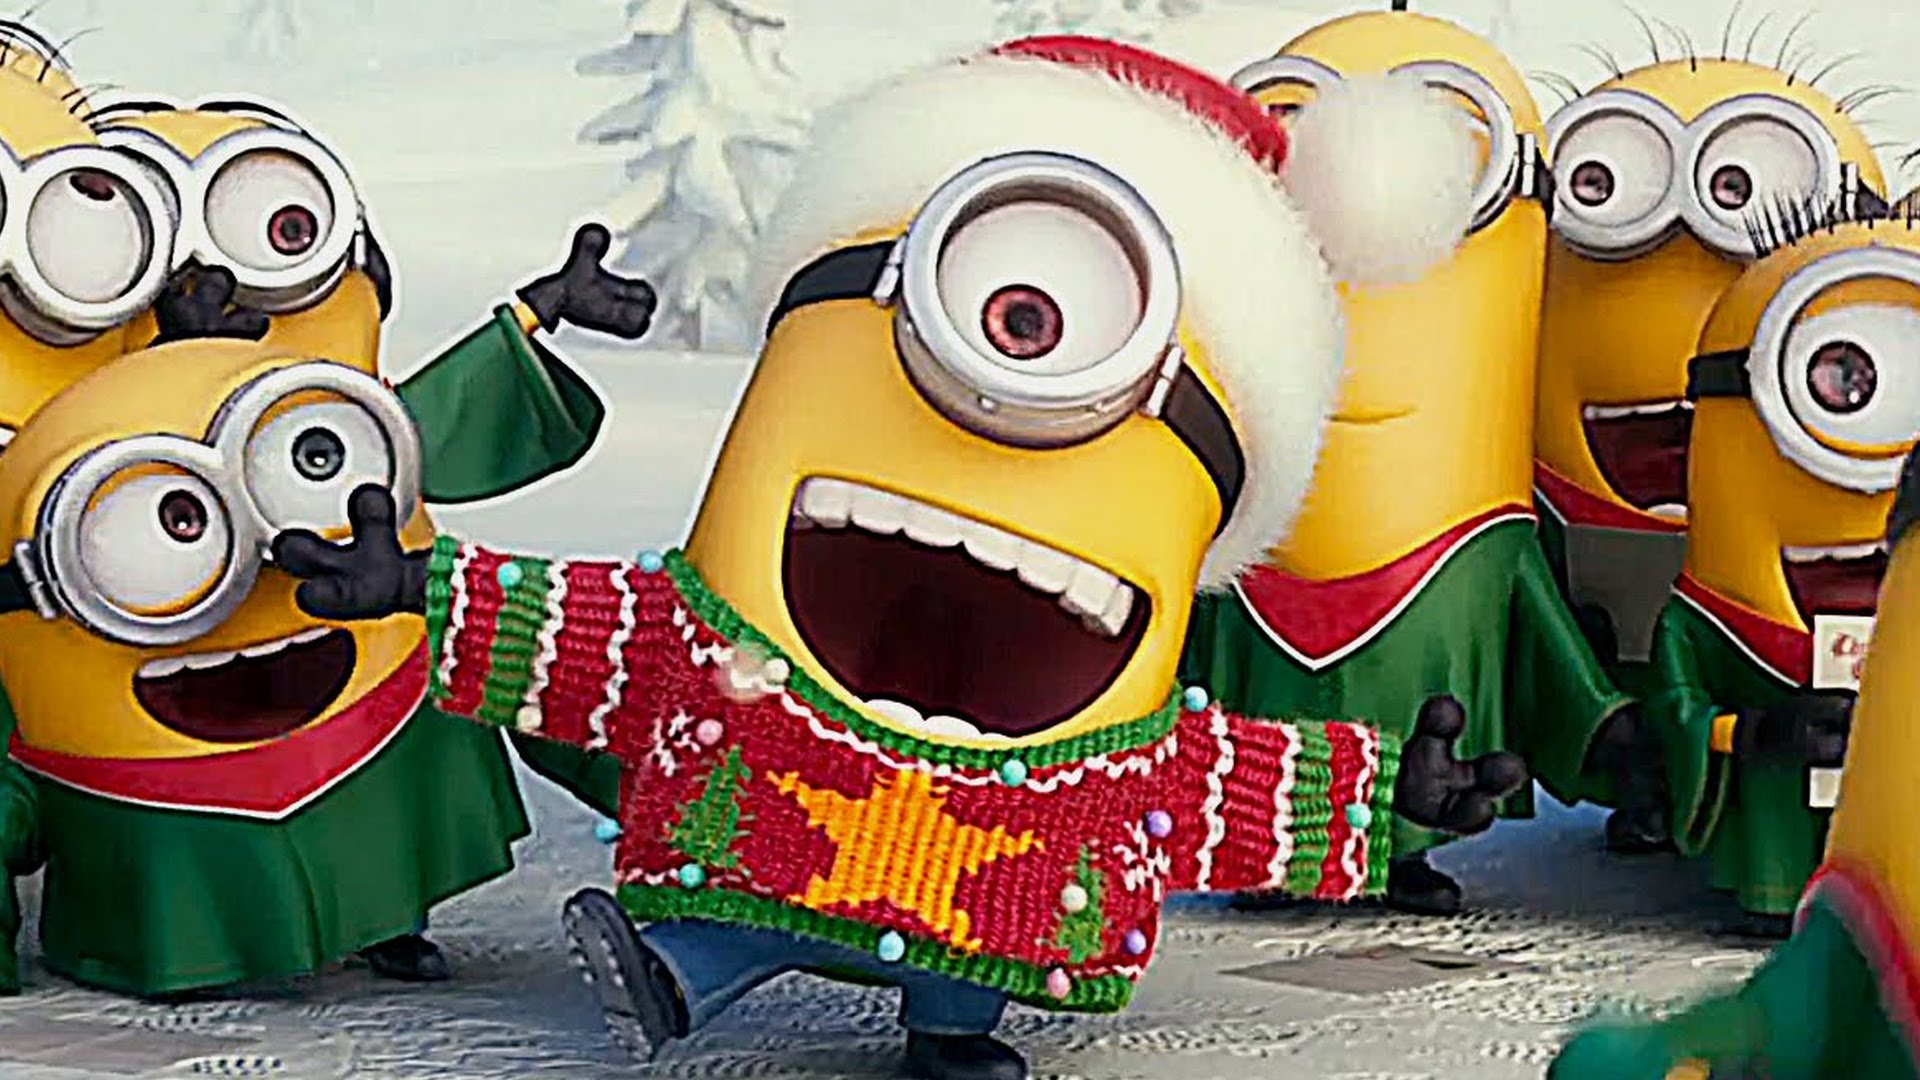 Falling Snow Live Wallpaper For Pc At The End Of The Day Minions For Christmas It Is